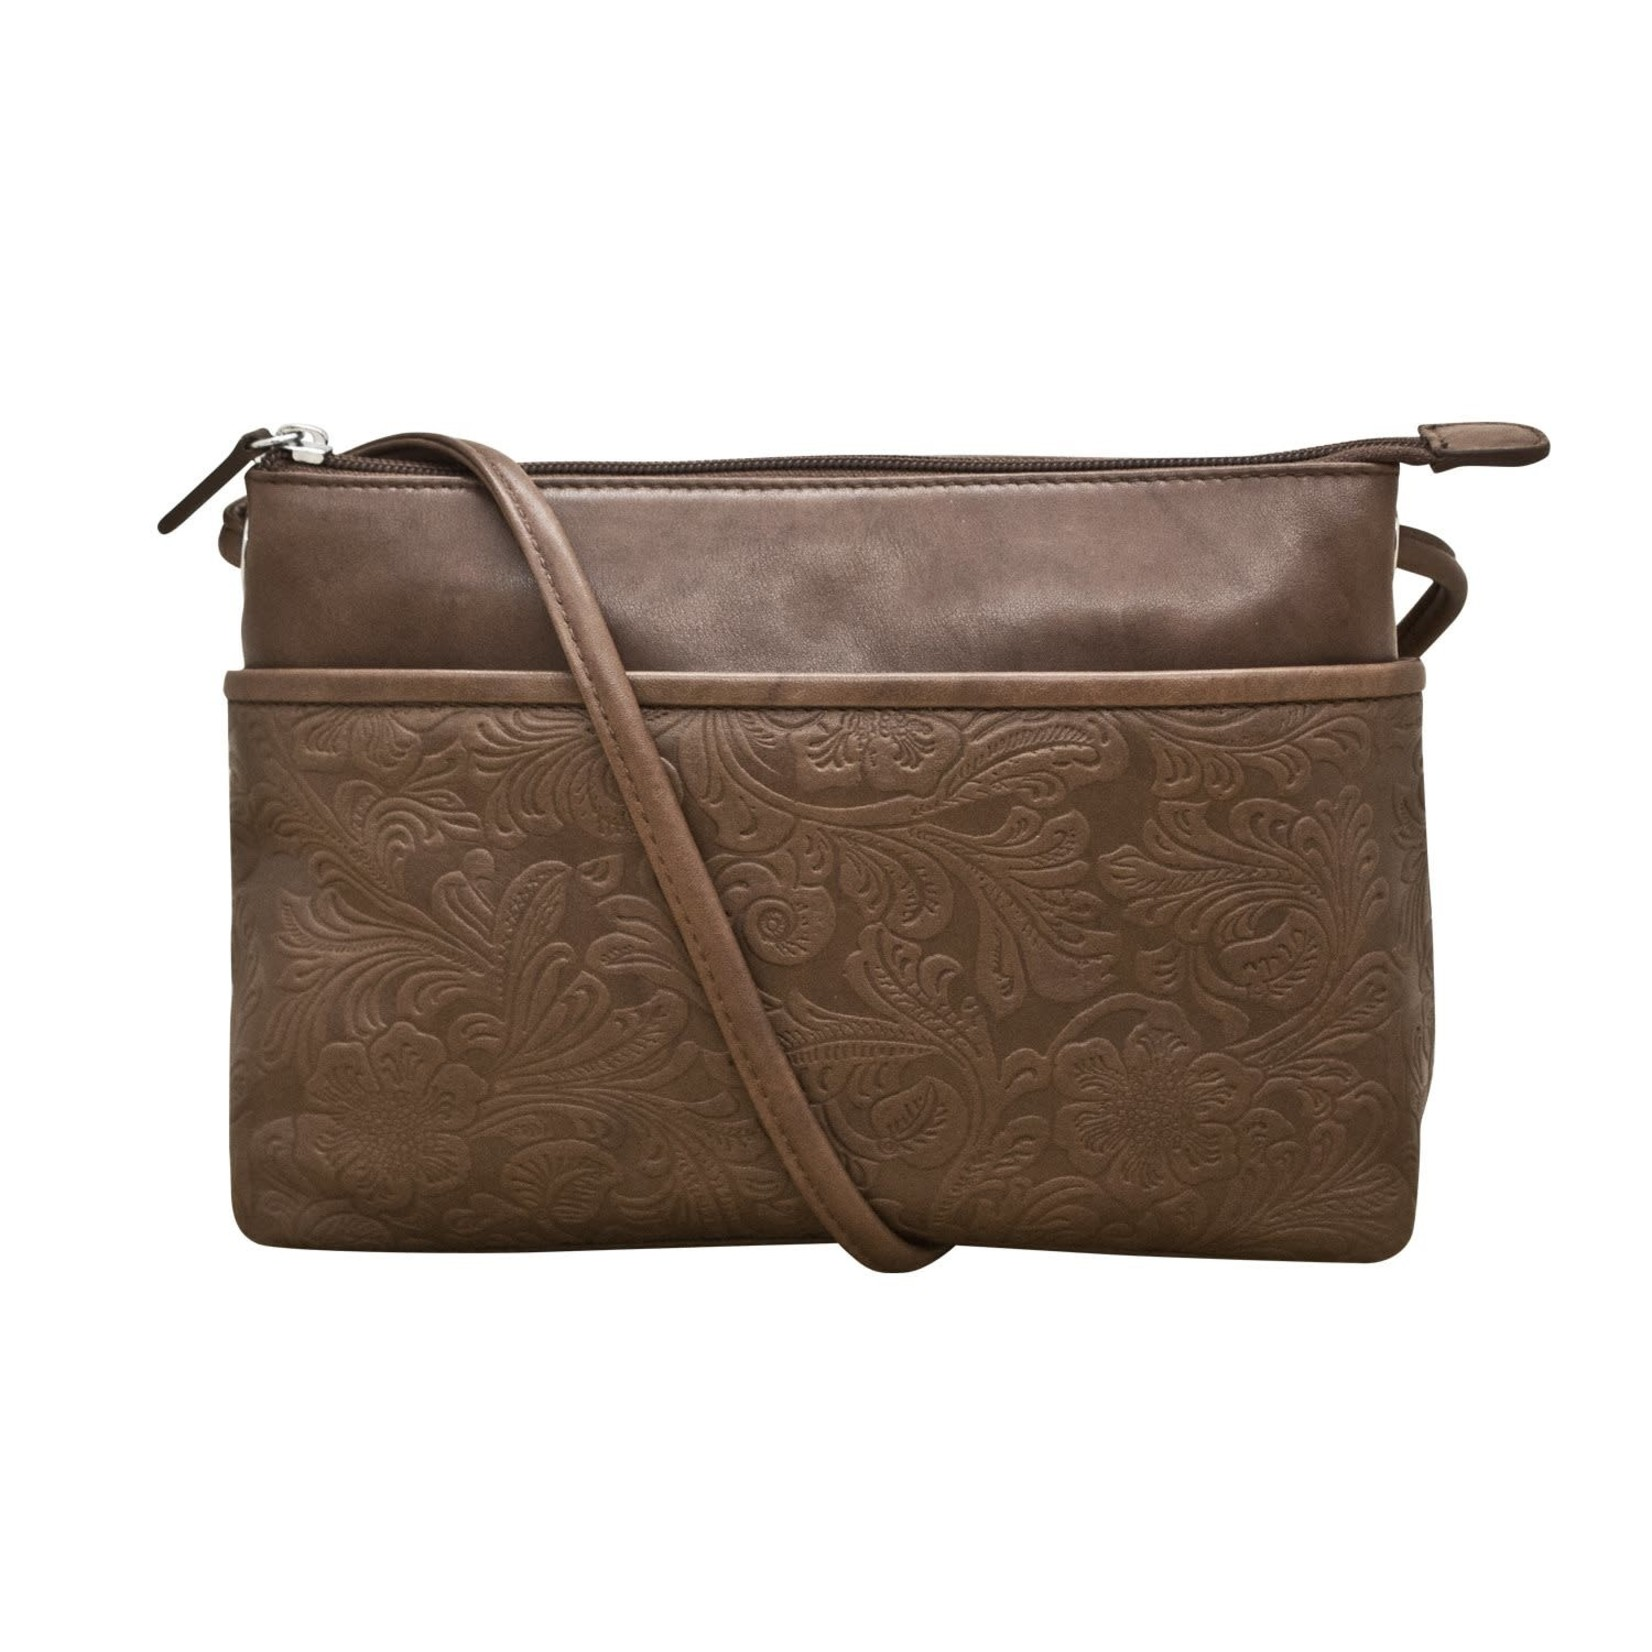 Leather Handbags and Accessories 6566 Toffee - Cheyenne East West Crossbody